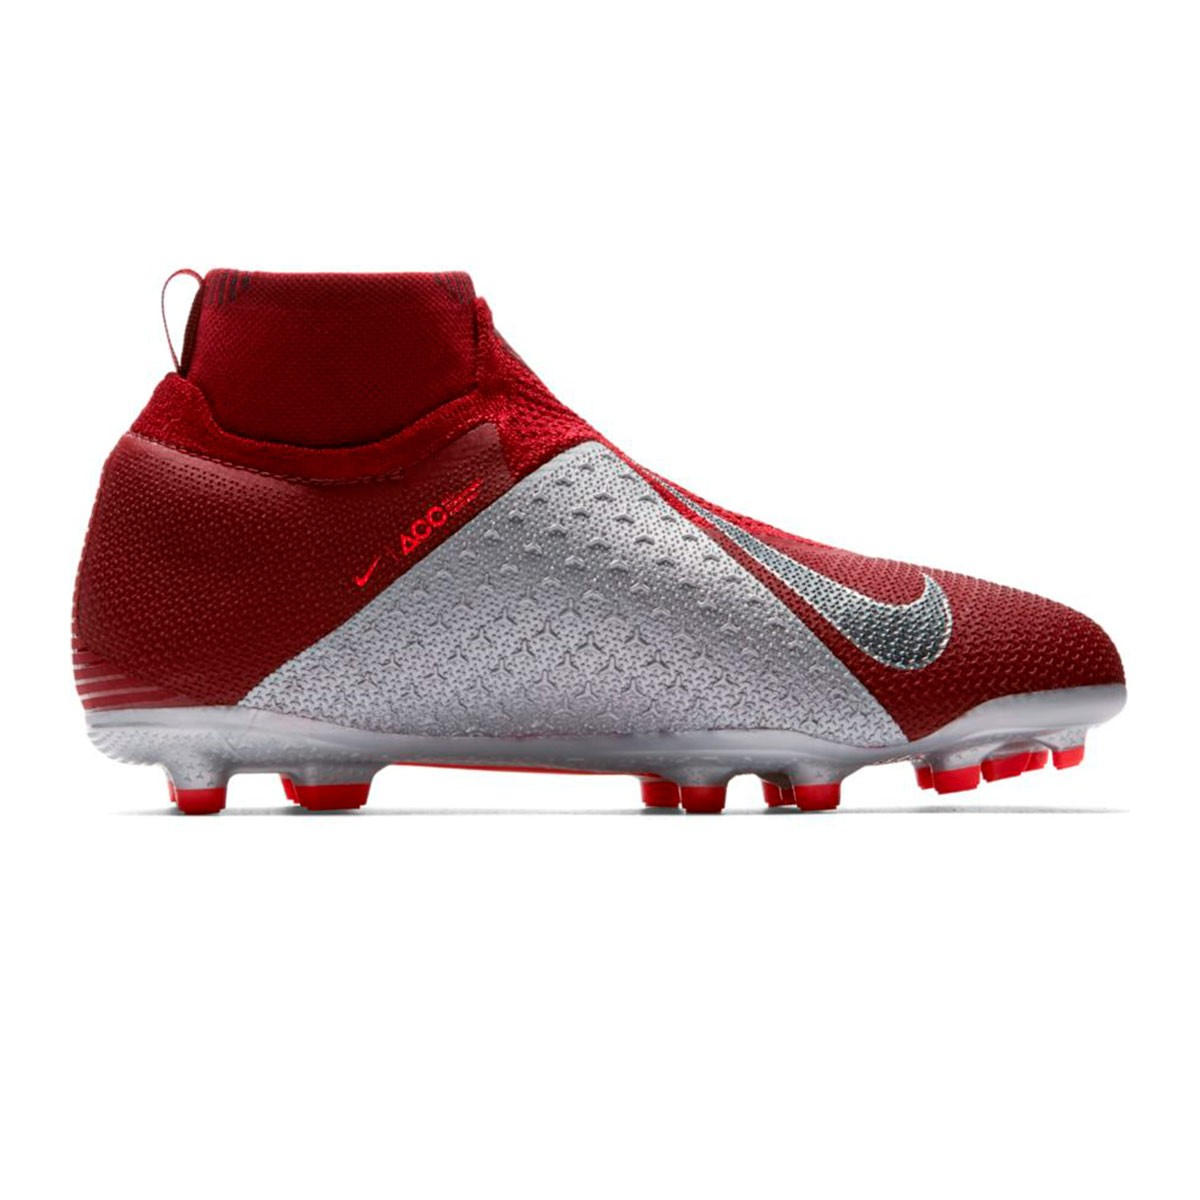 75e4ead4f3e9f Bota de fútbol Nike Phantom Vision Elite DF MG Niño Team red-Metallic dark  grey-Bright crimson - Tienda de fútbol Fútbol Emotion